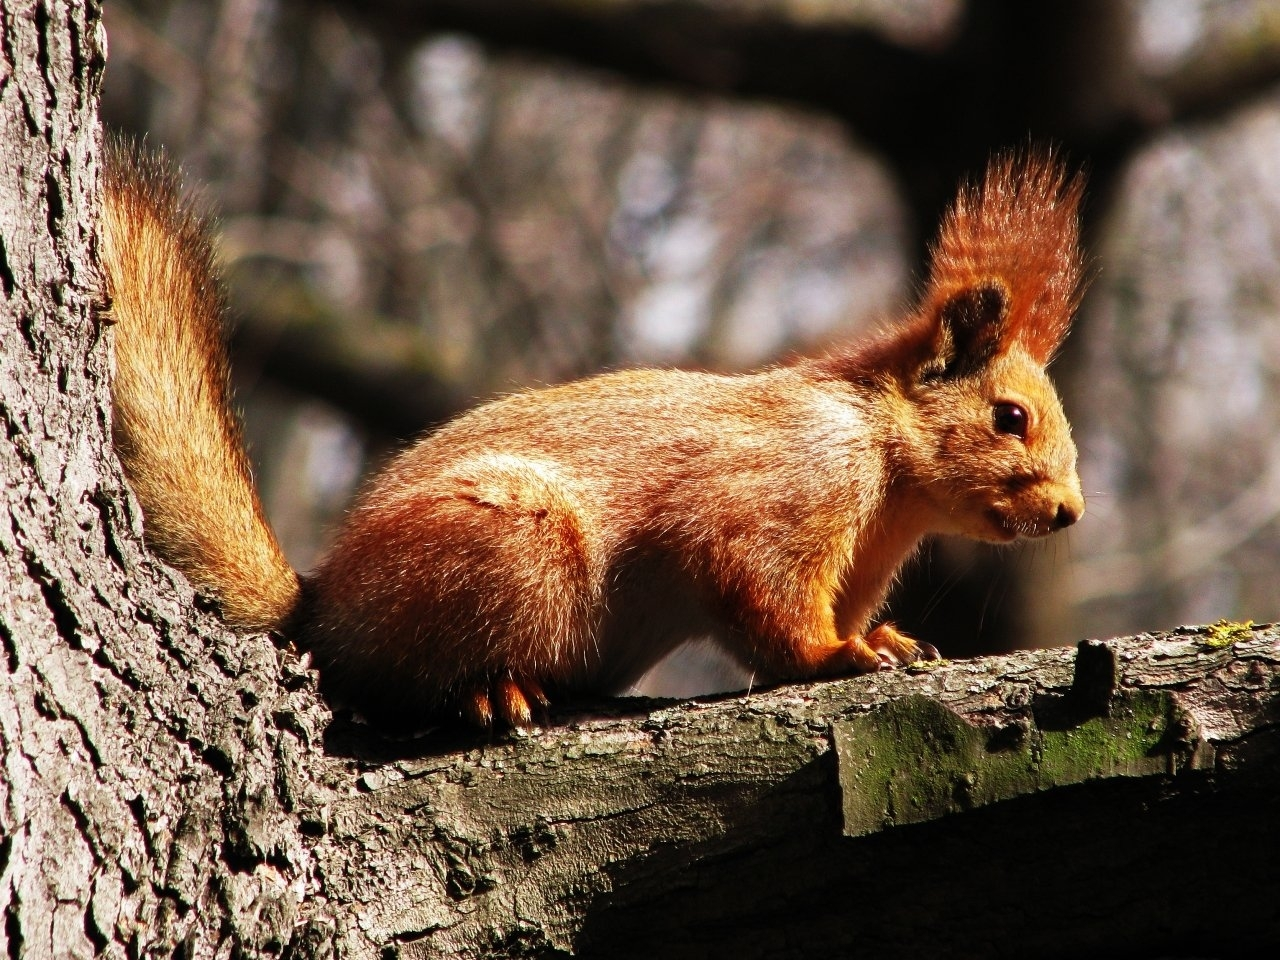 40698 download wallpaper Animals, Squirrel screensavers and pictures for free